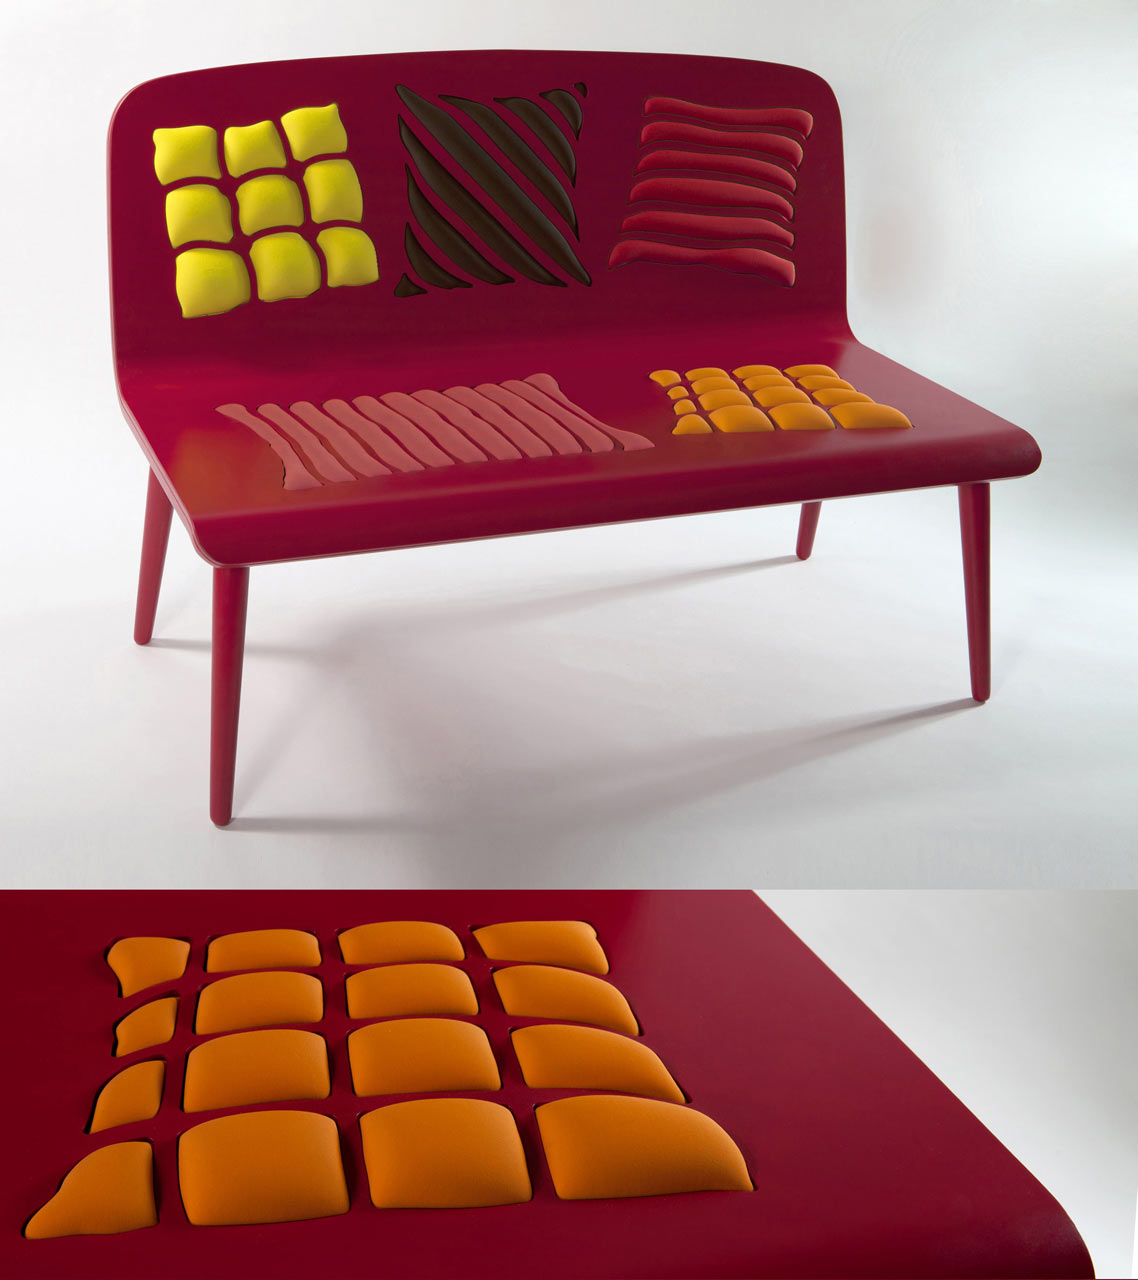 Poppins: Op Art Bench from Alessandra Baldereschi